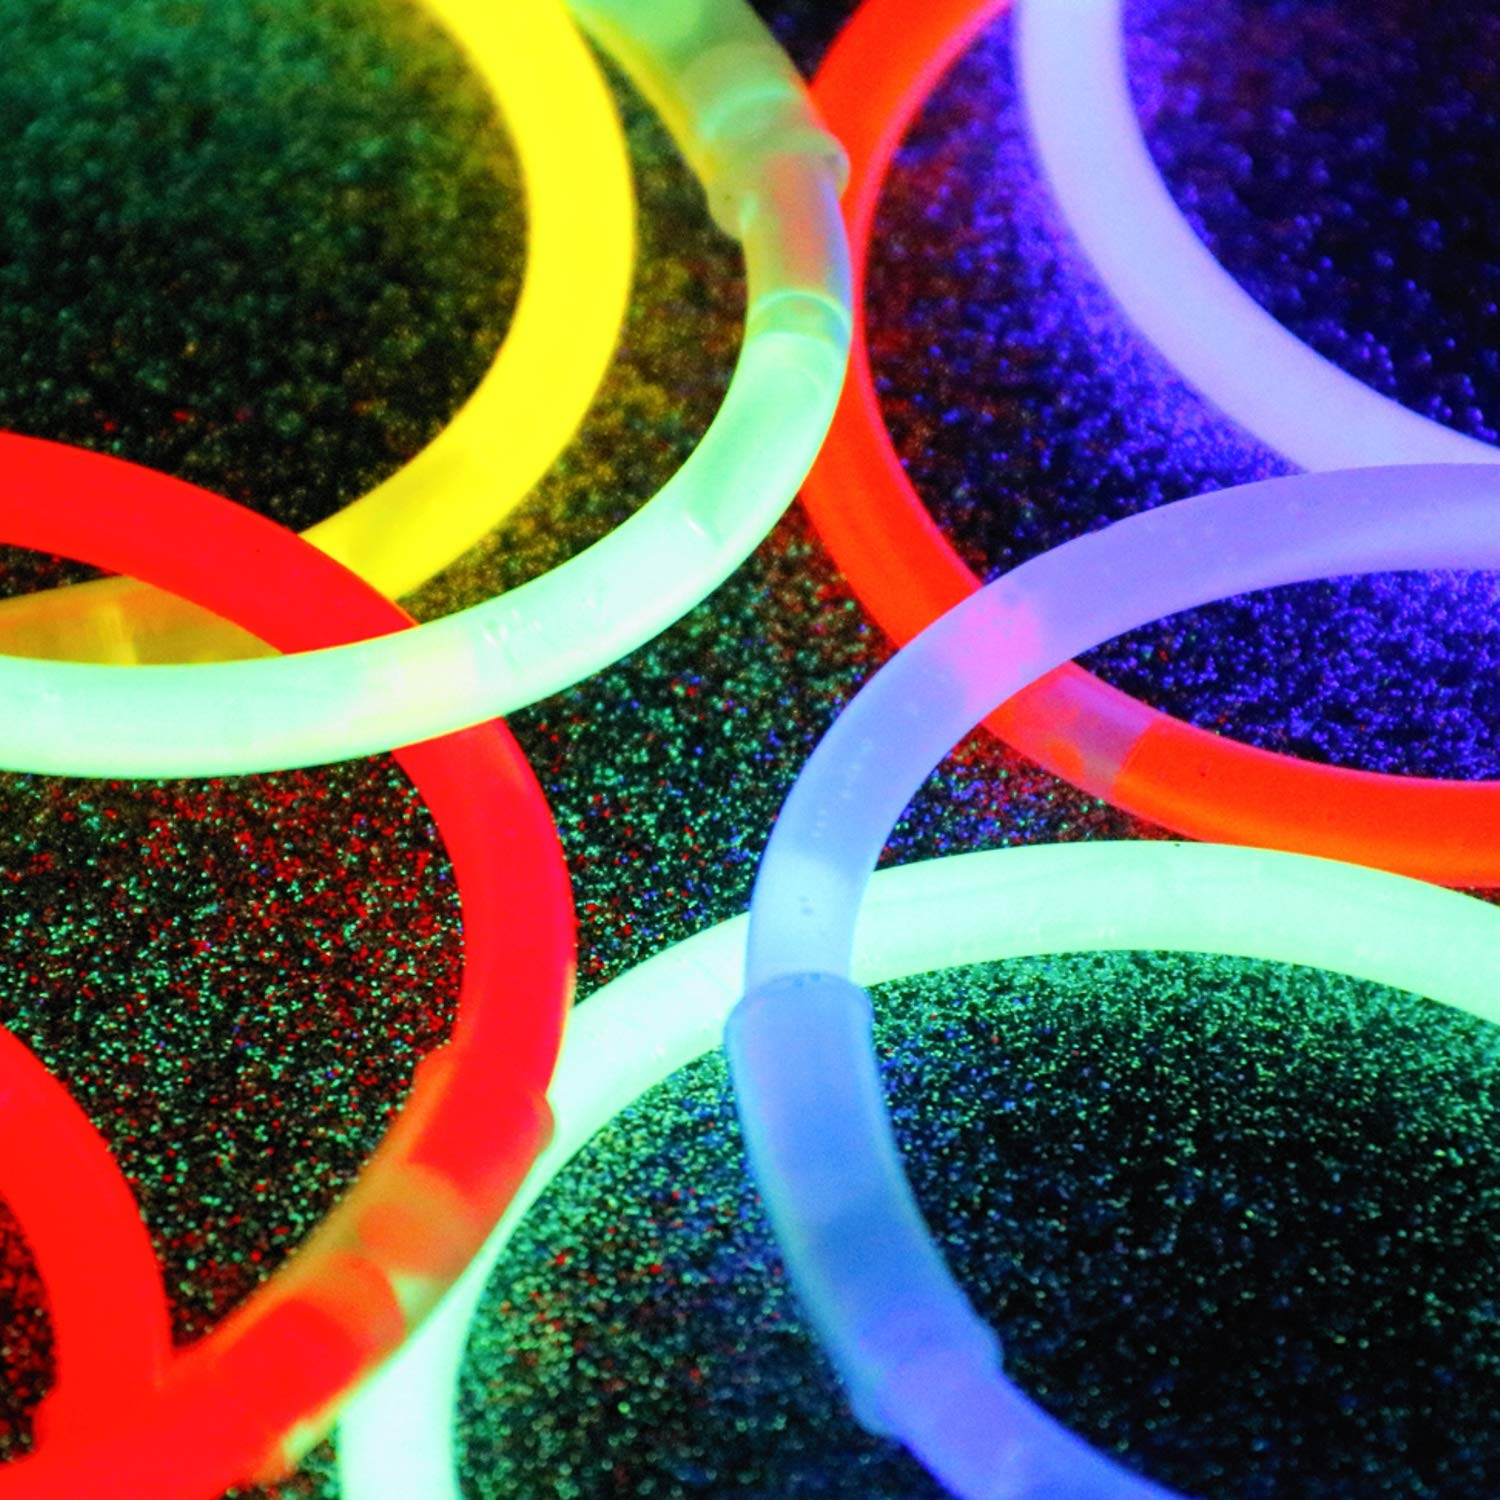 IG Light-Ups 300 Assorted Bracelet Glow Sticks Makes Glow Necklaces Best Non-Candy Halloween Party Favors Premium 8 Inch Glow Sticks Bulk Party Pack